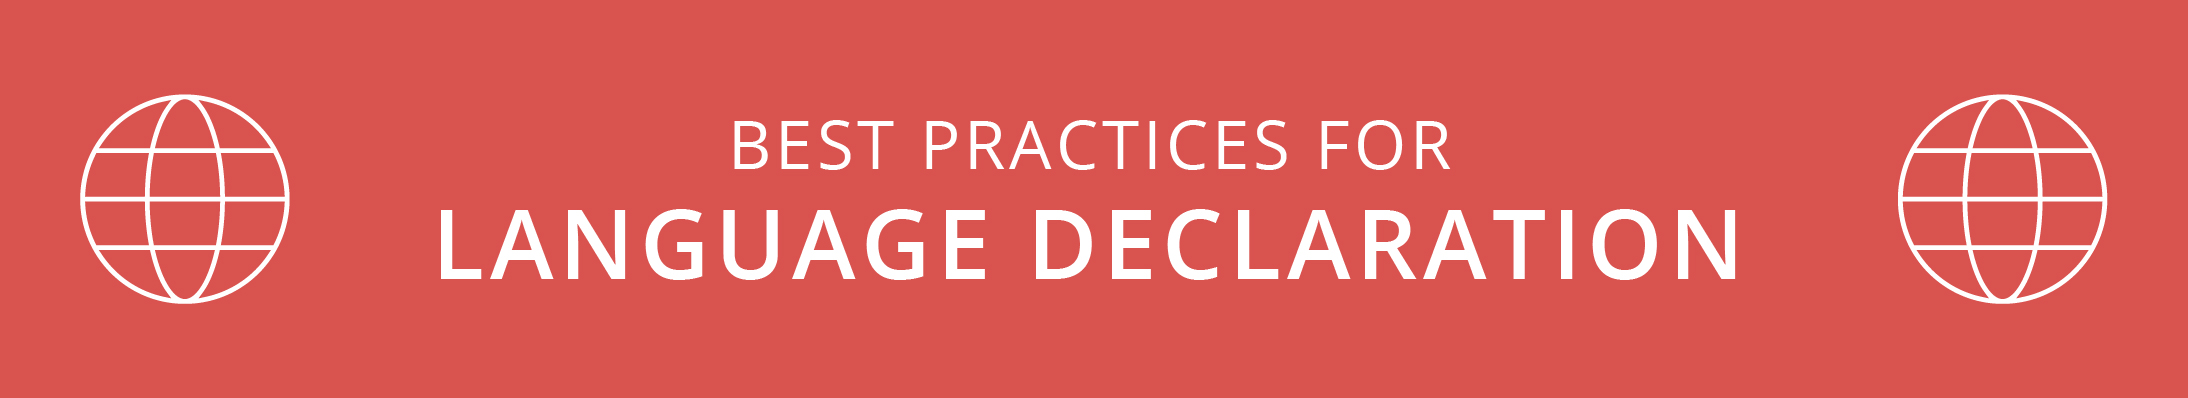 Best Practices for Language Declaration